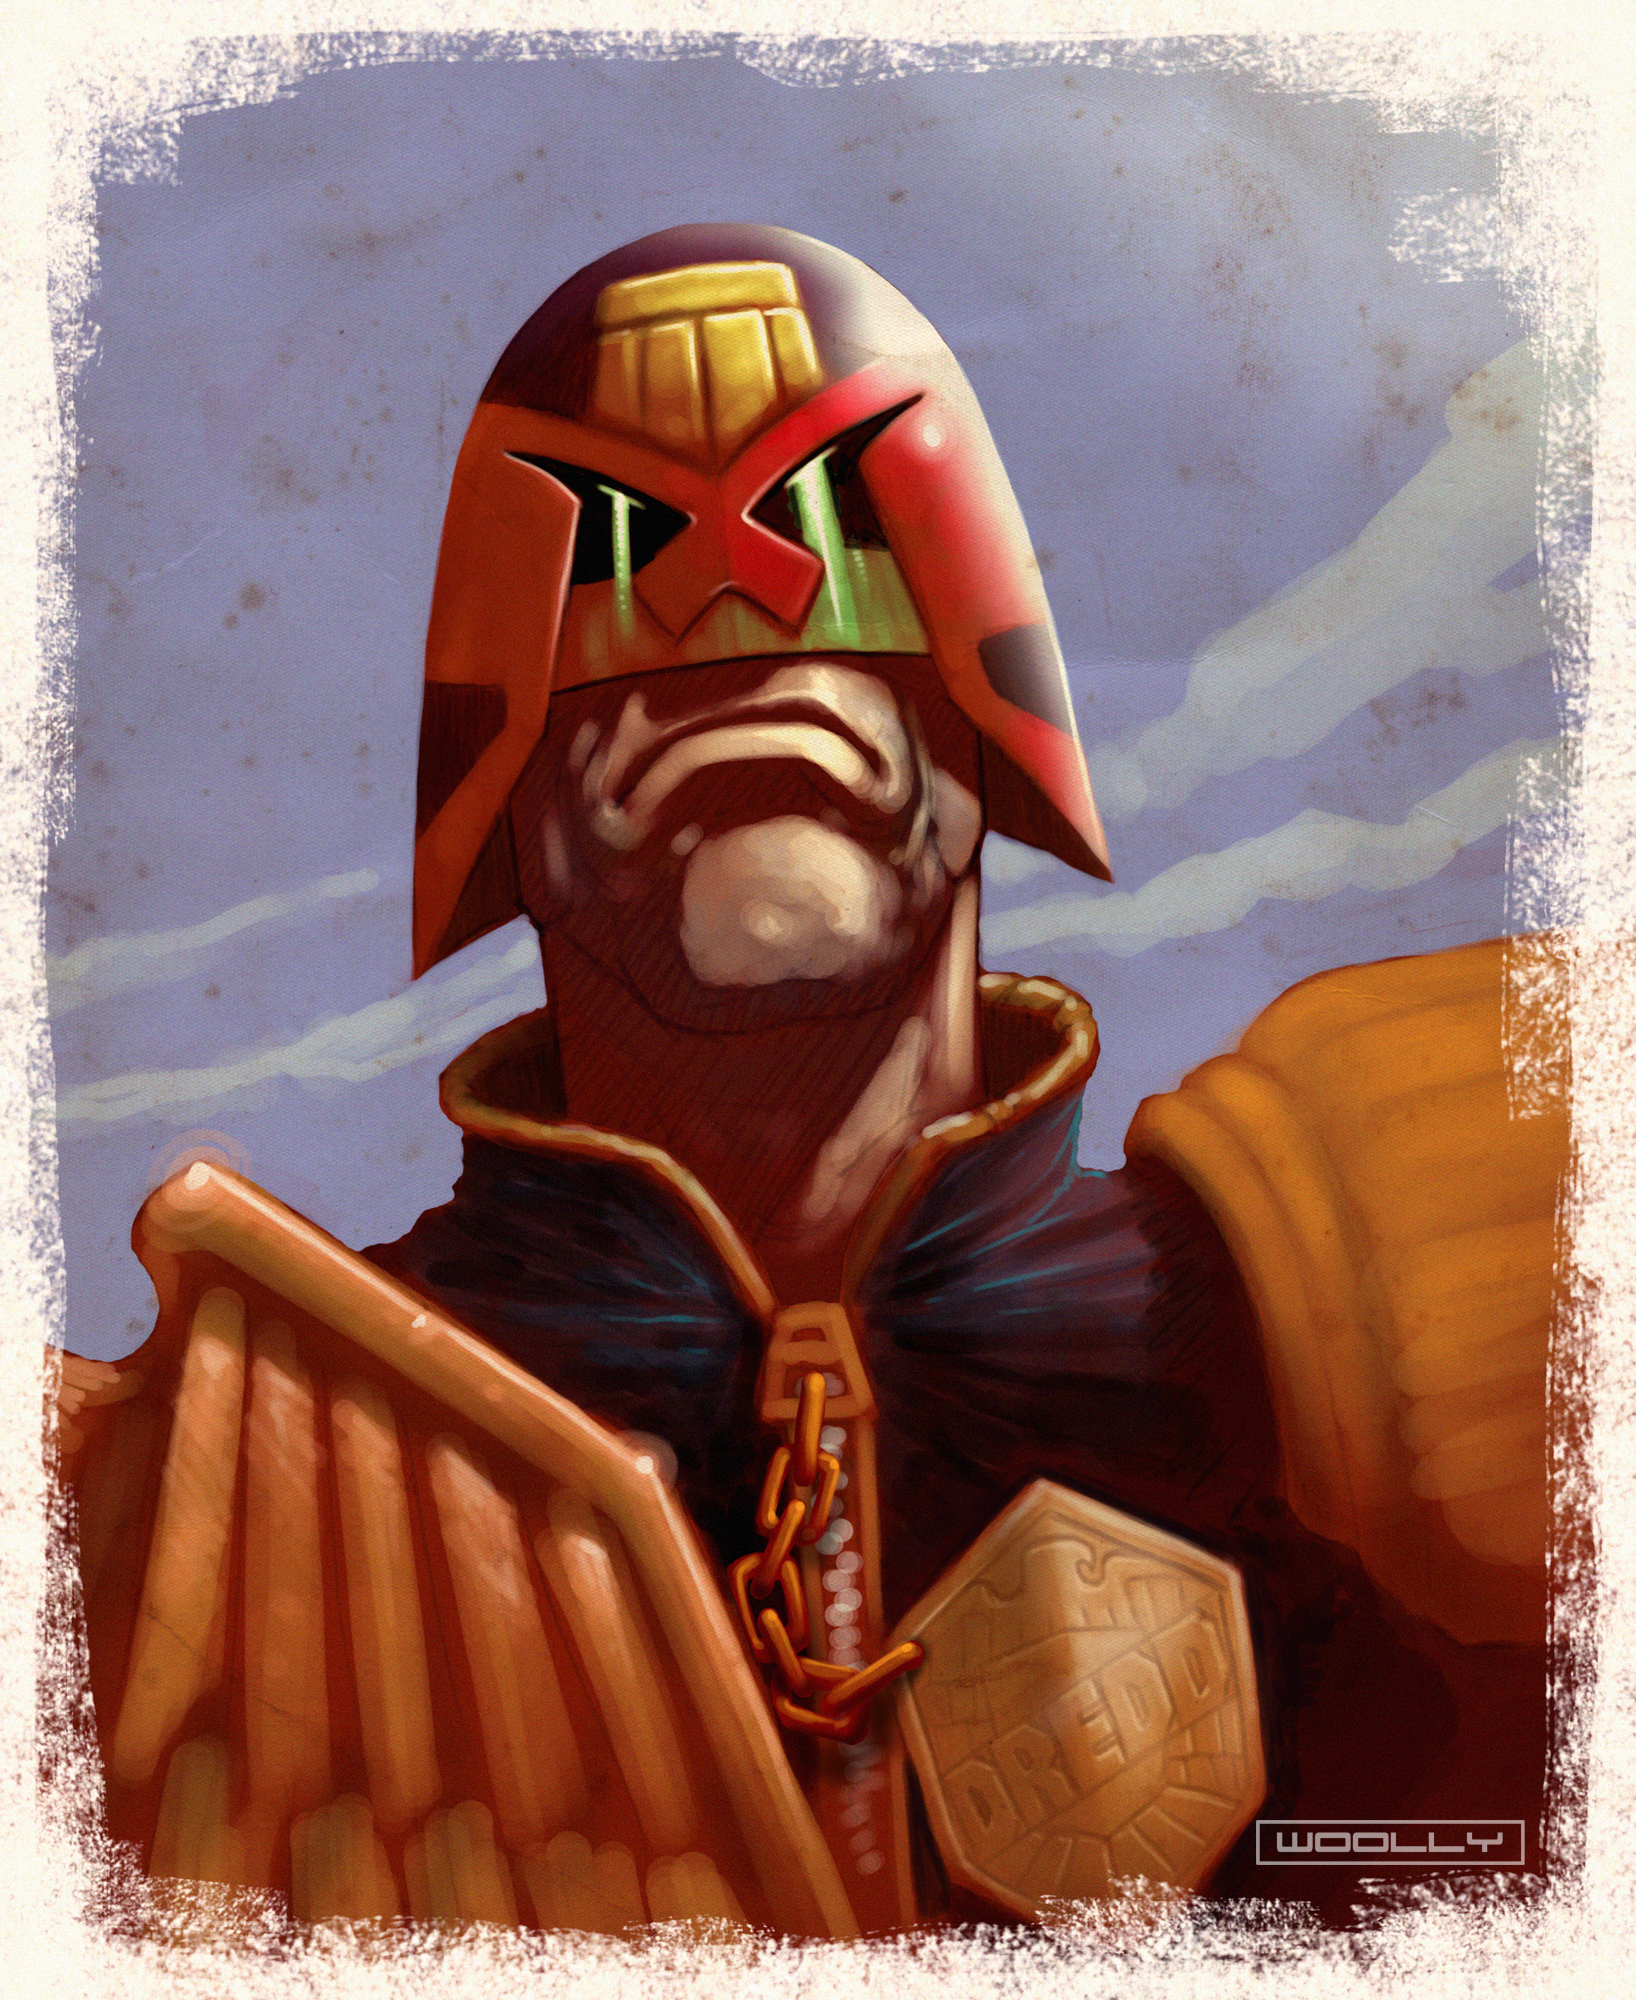 Judge Dredd quick paint by Woolly76